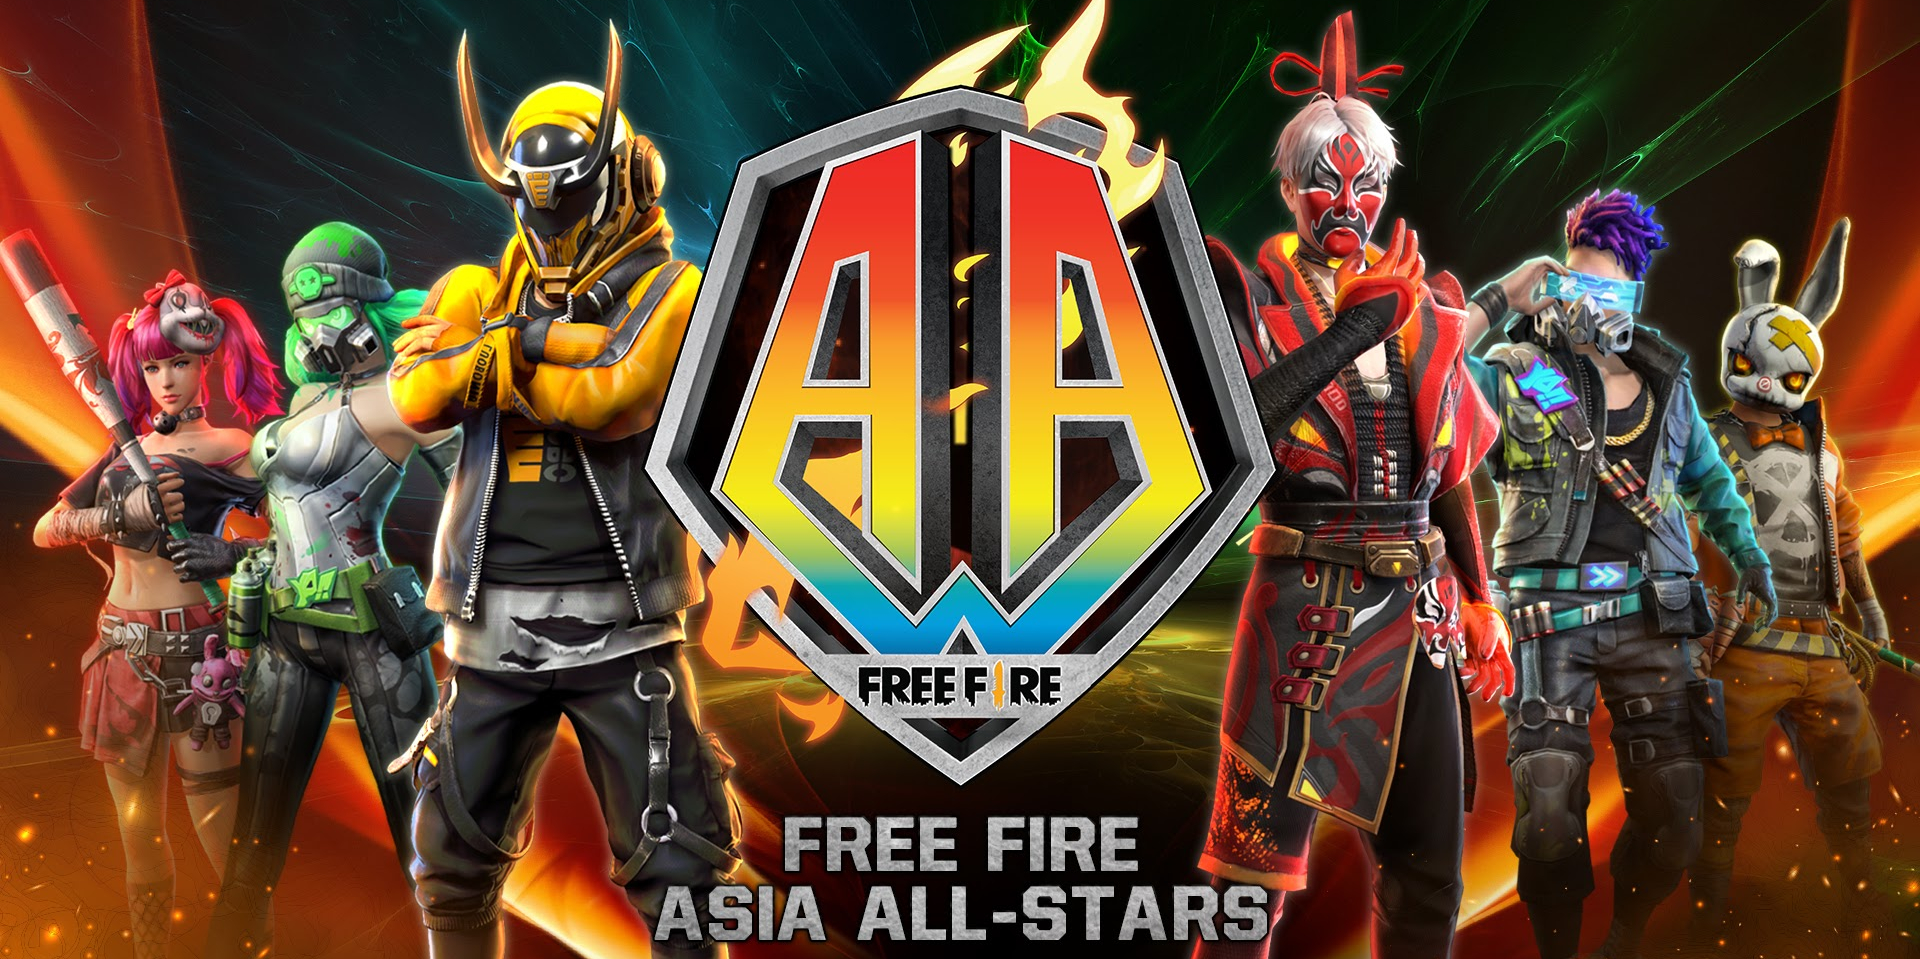 Free Fire Asia All-Stars 2020 tournament draws in over 20 million viewers